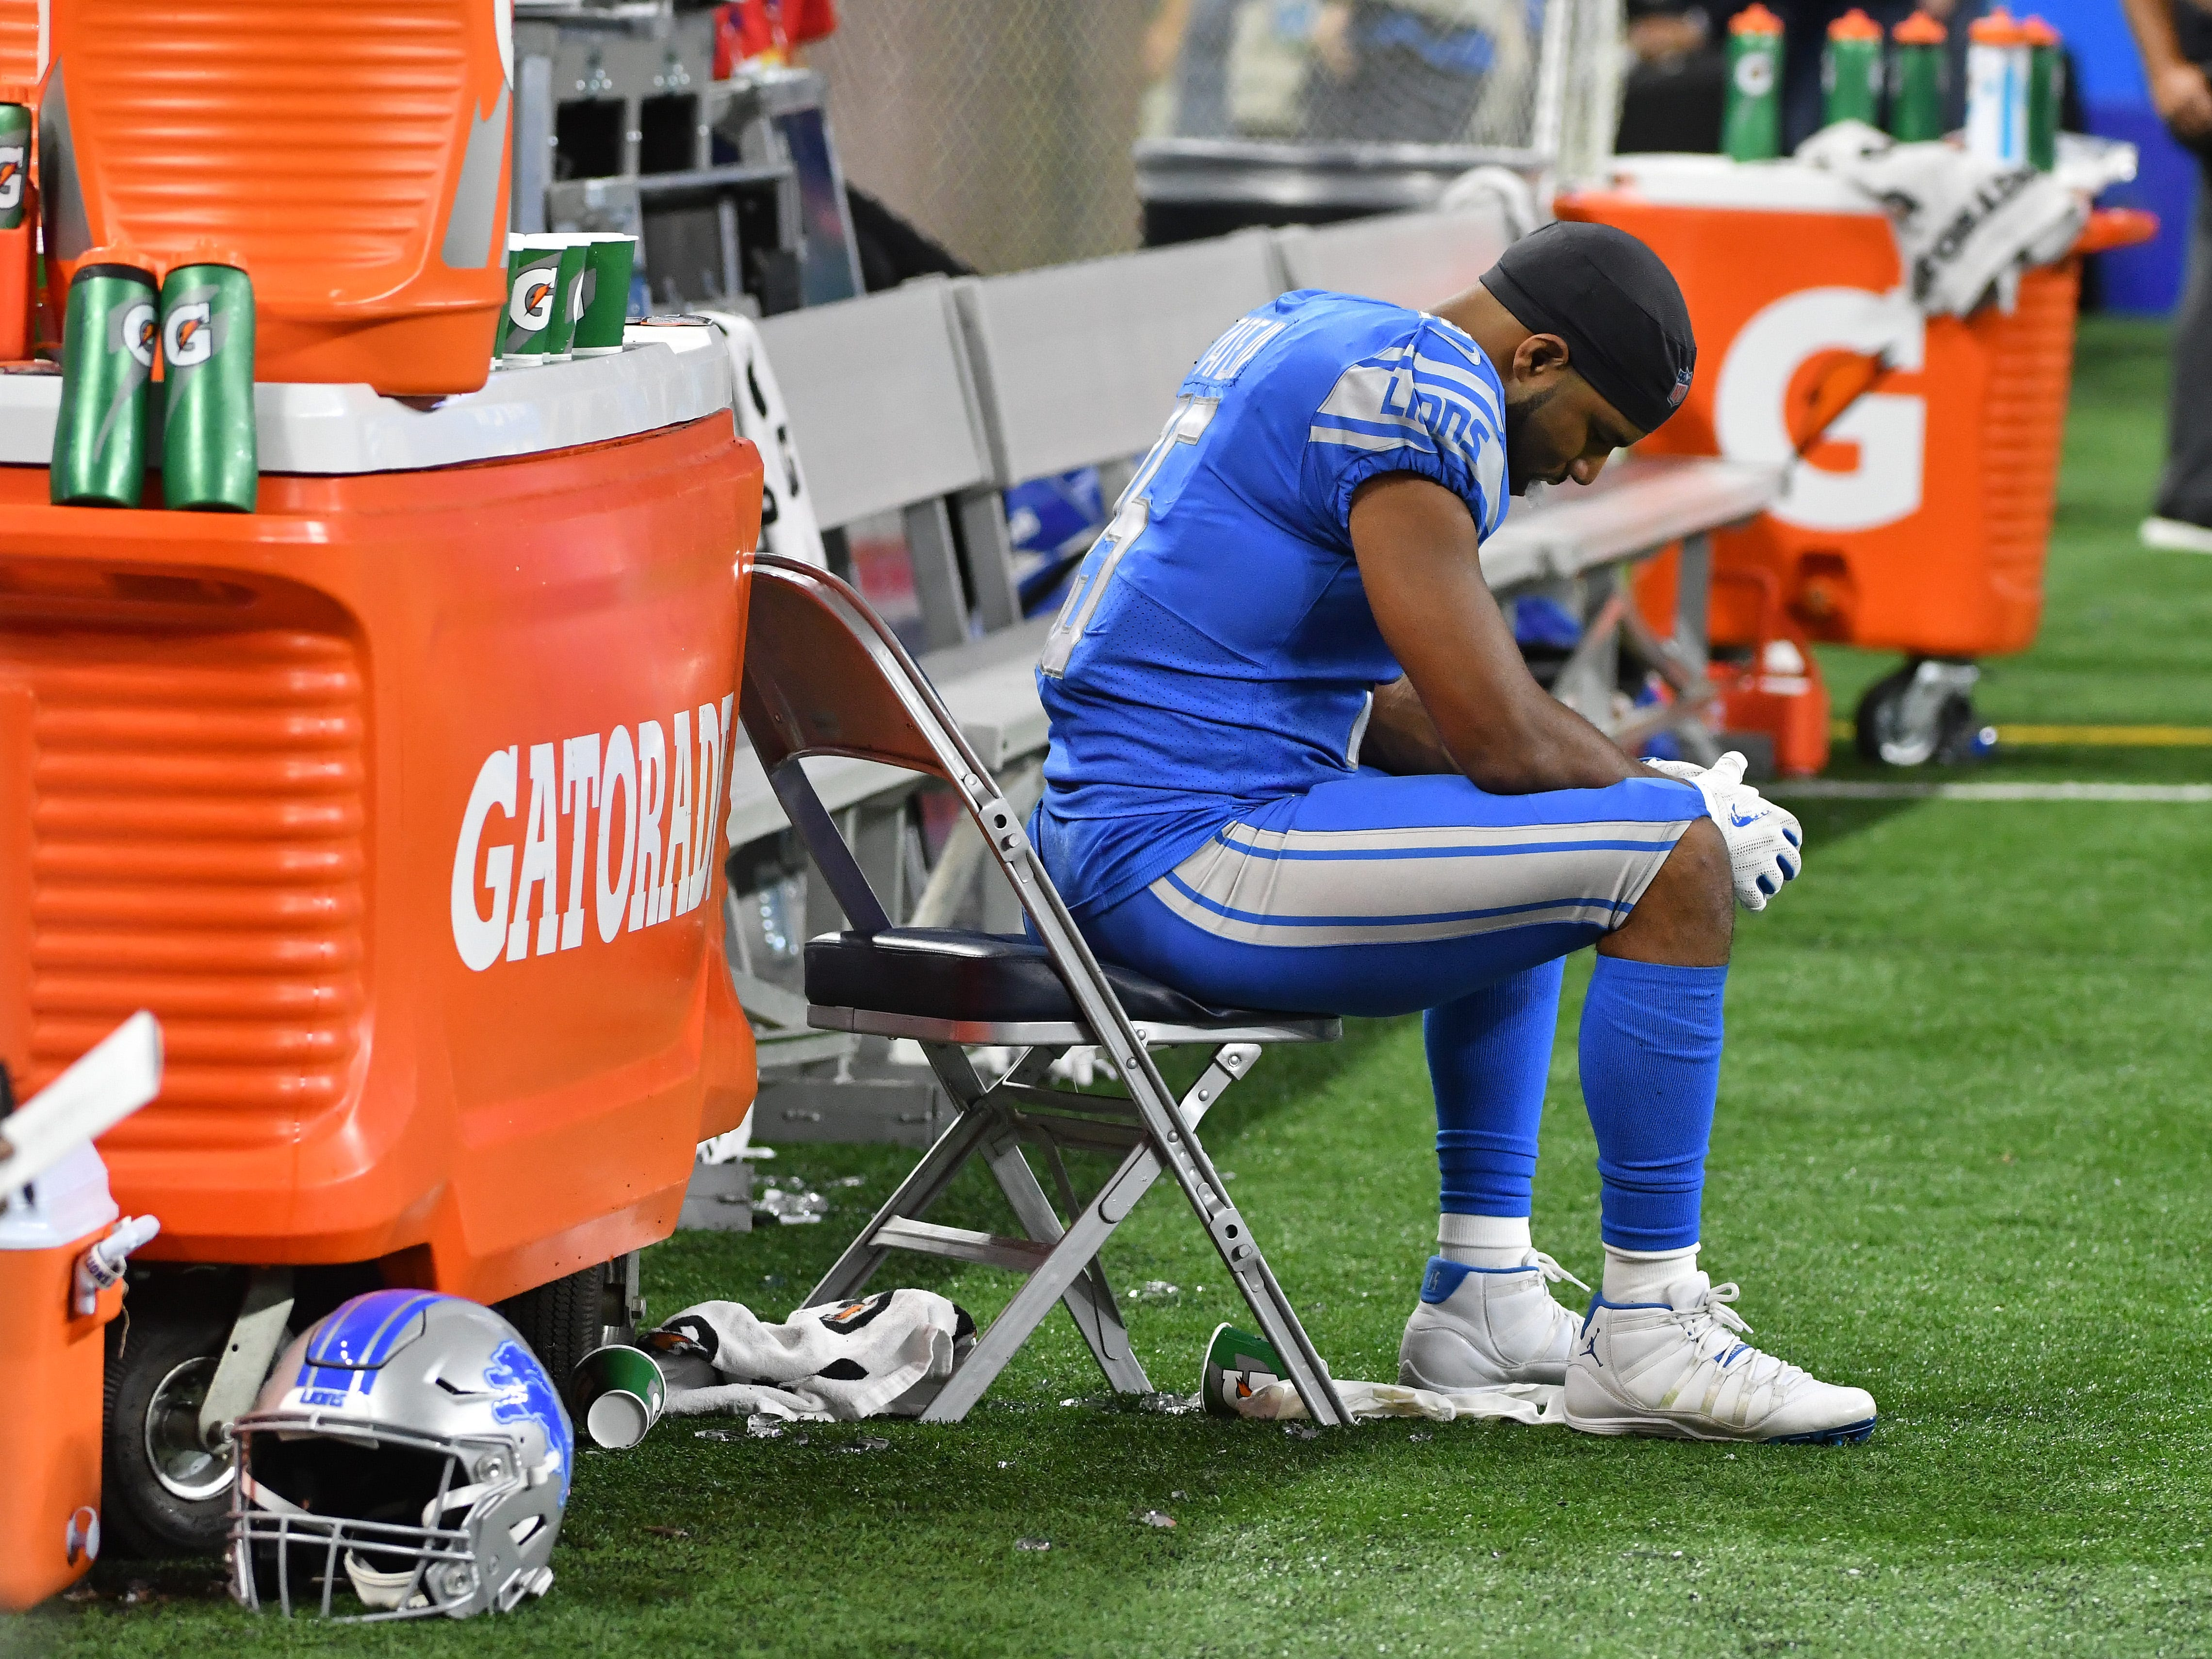 Lions wide receiver Golden Tate sits on the sidelines late in the fourth quarter.